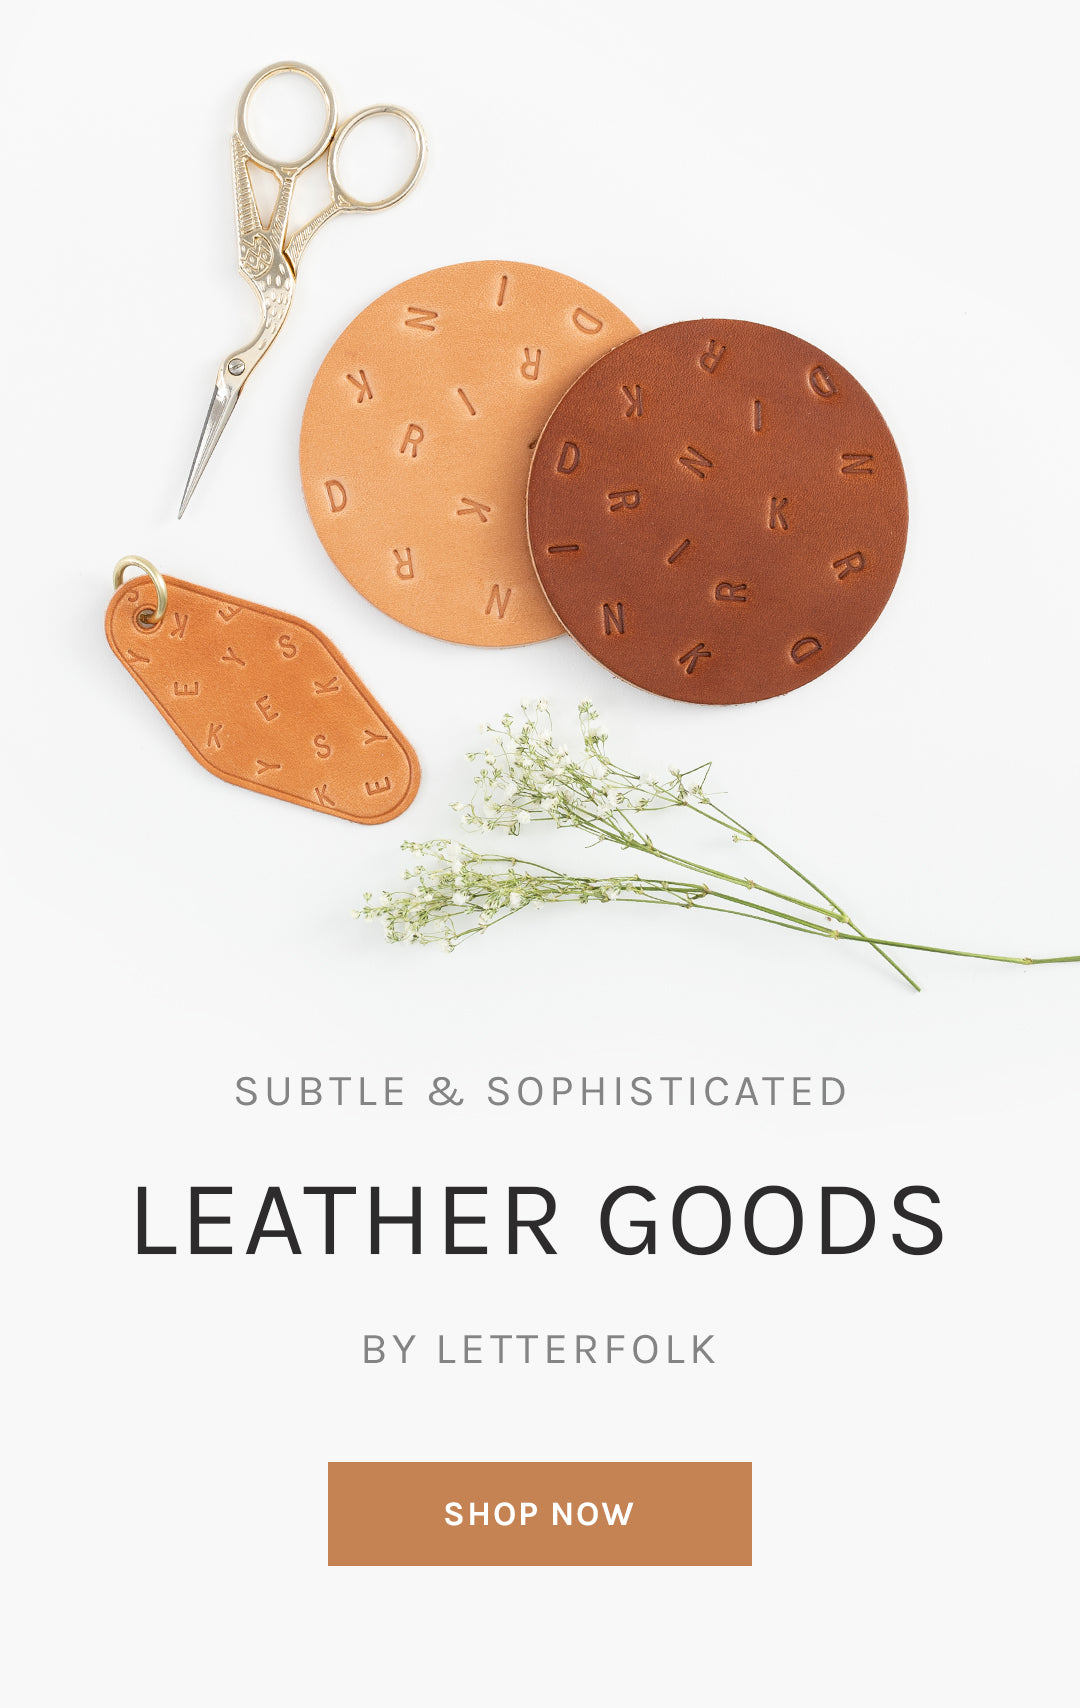 Subtle & Sophisticated Leather Goods by Letterfolk